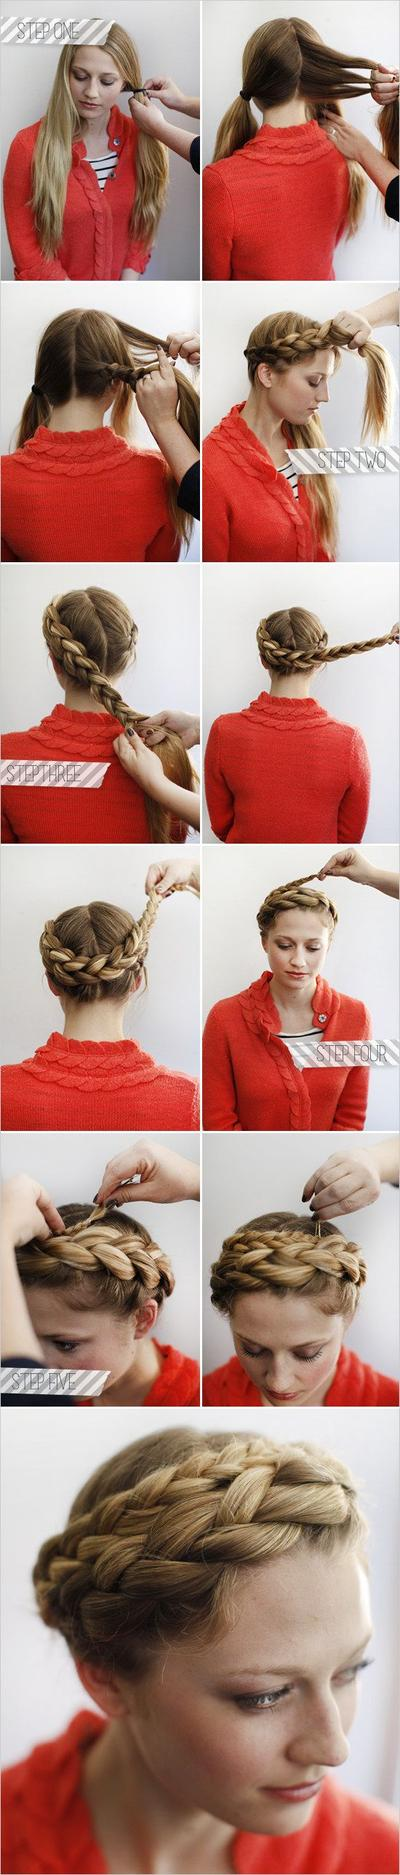 Classic Crown Braided Style